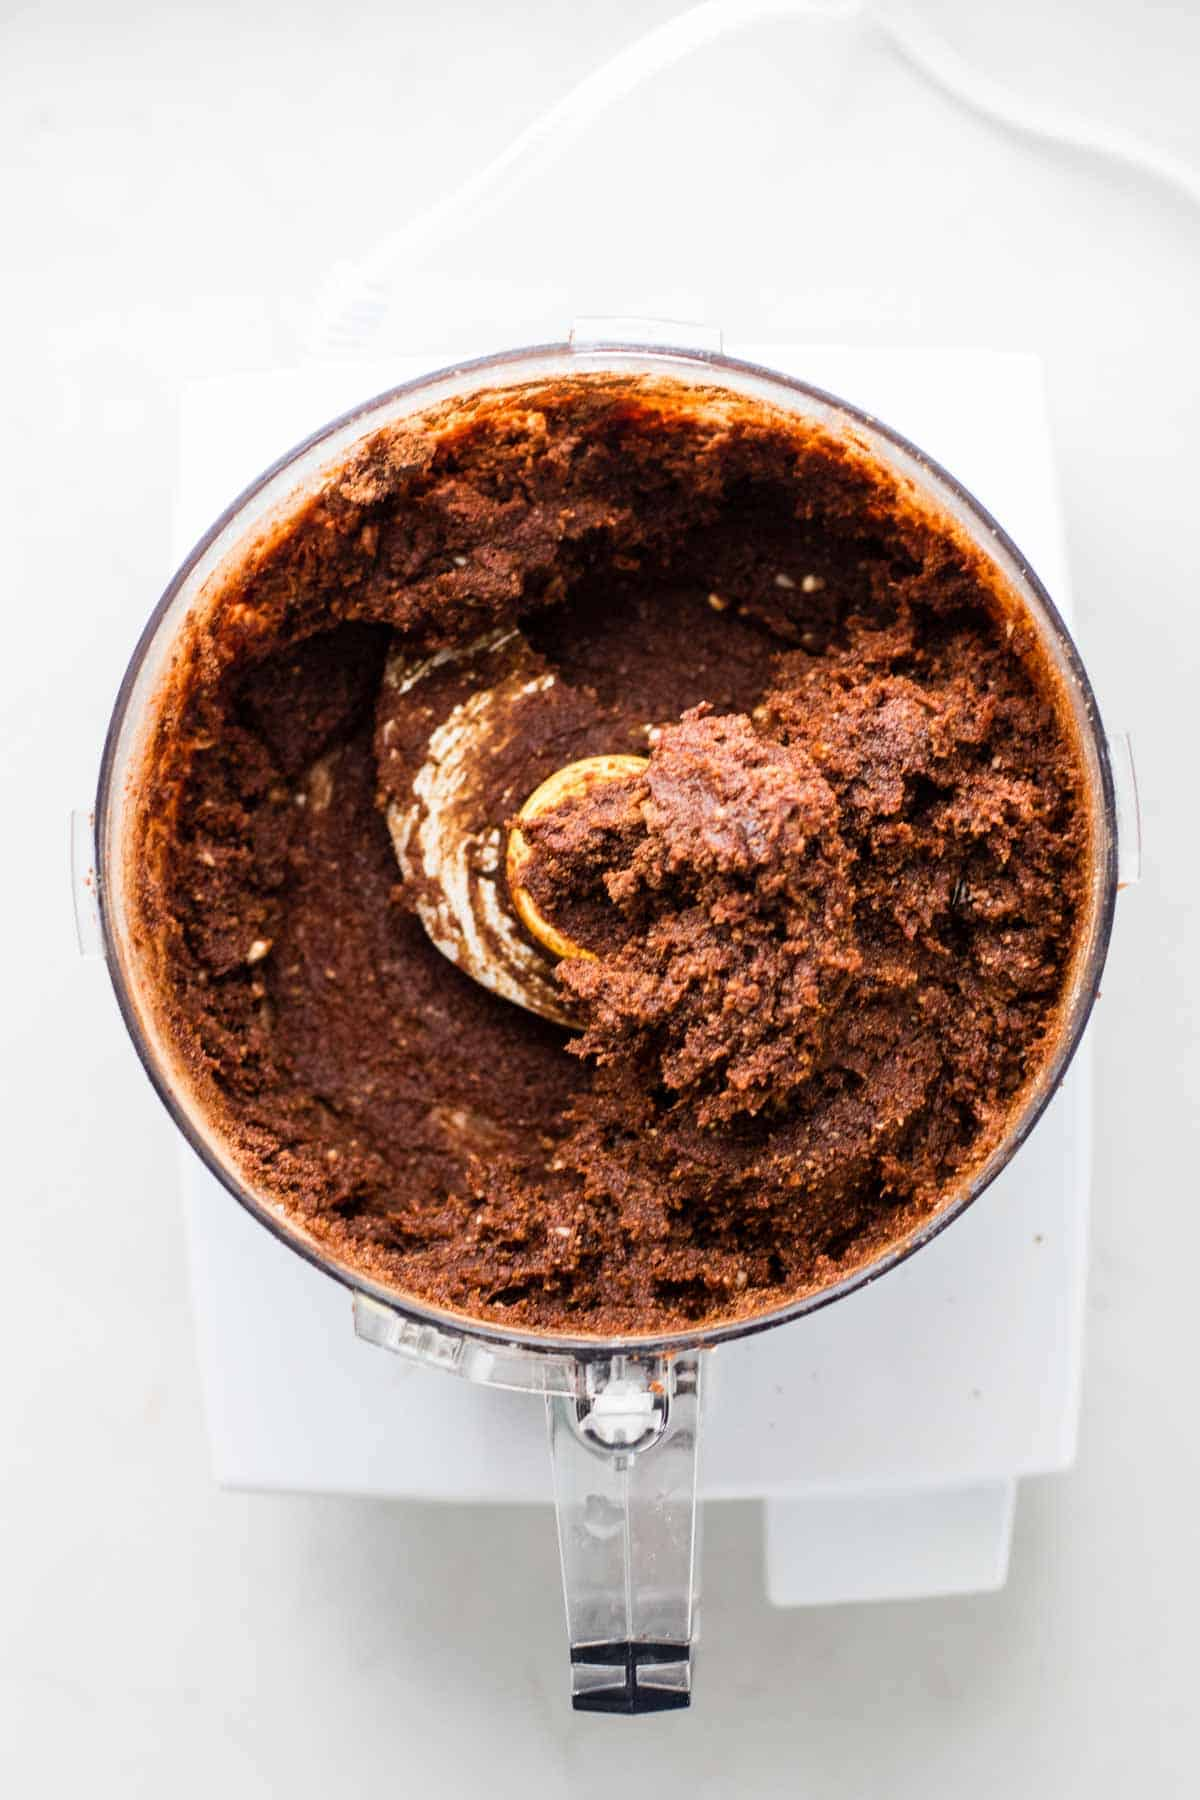 Making a cake with a food processor